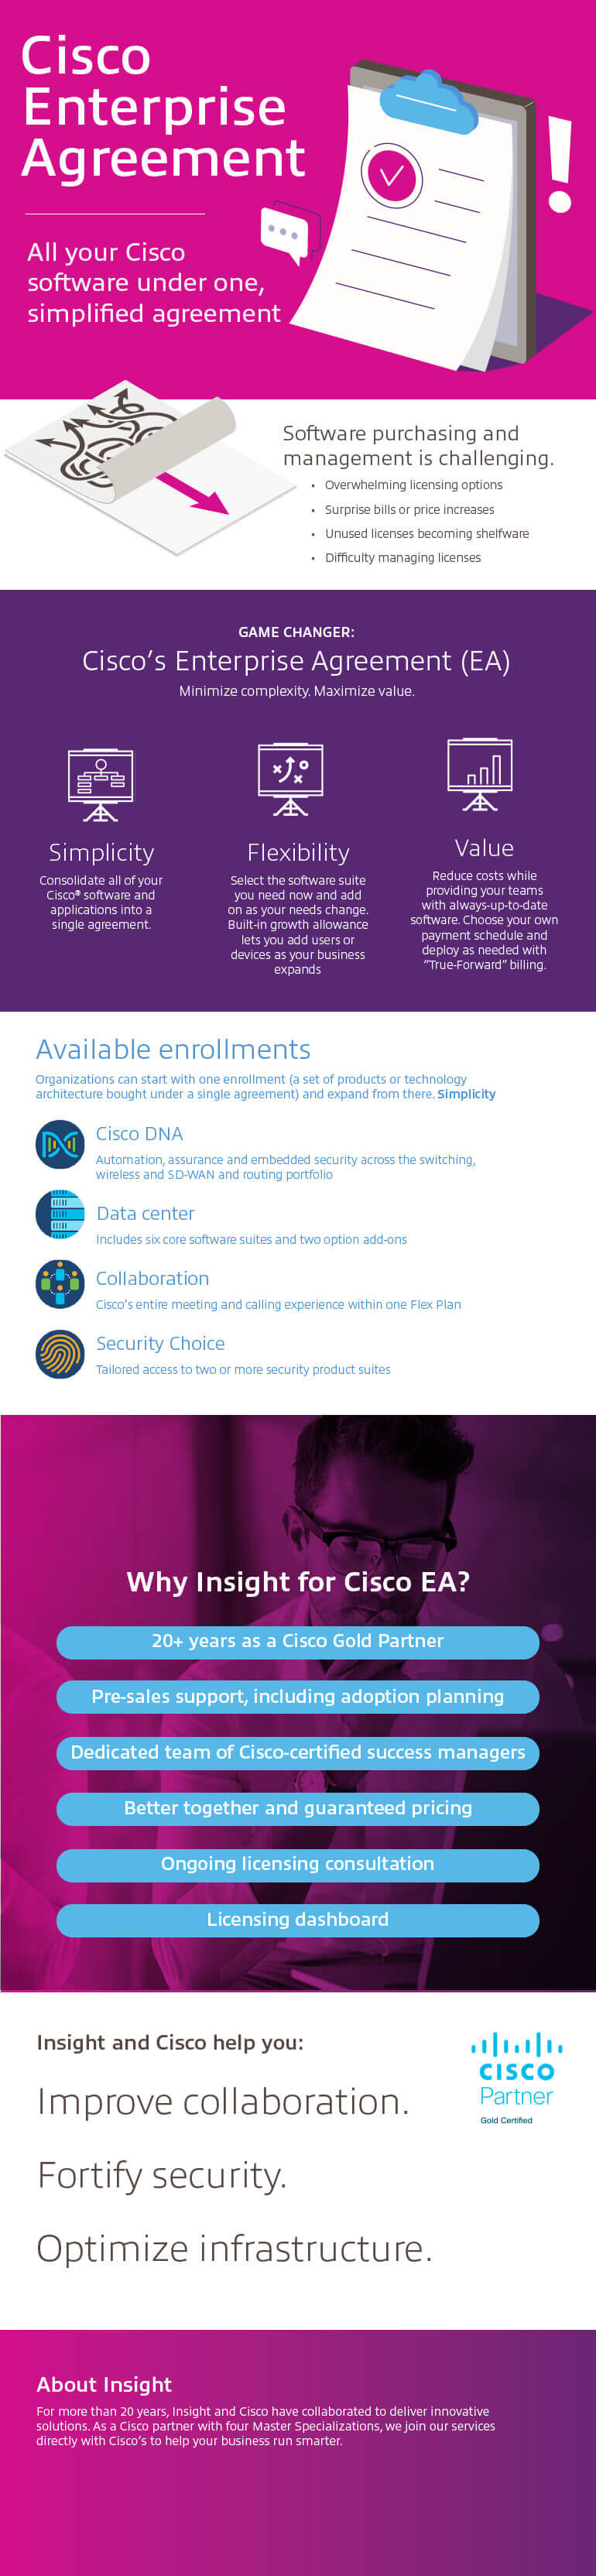 Cisco Enterprise Agreement Infographic